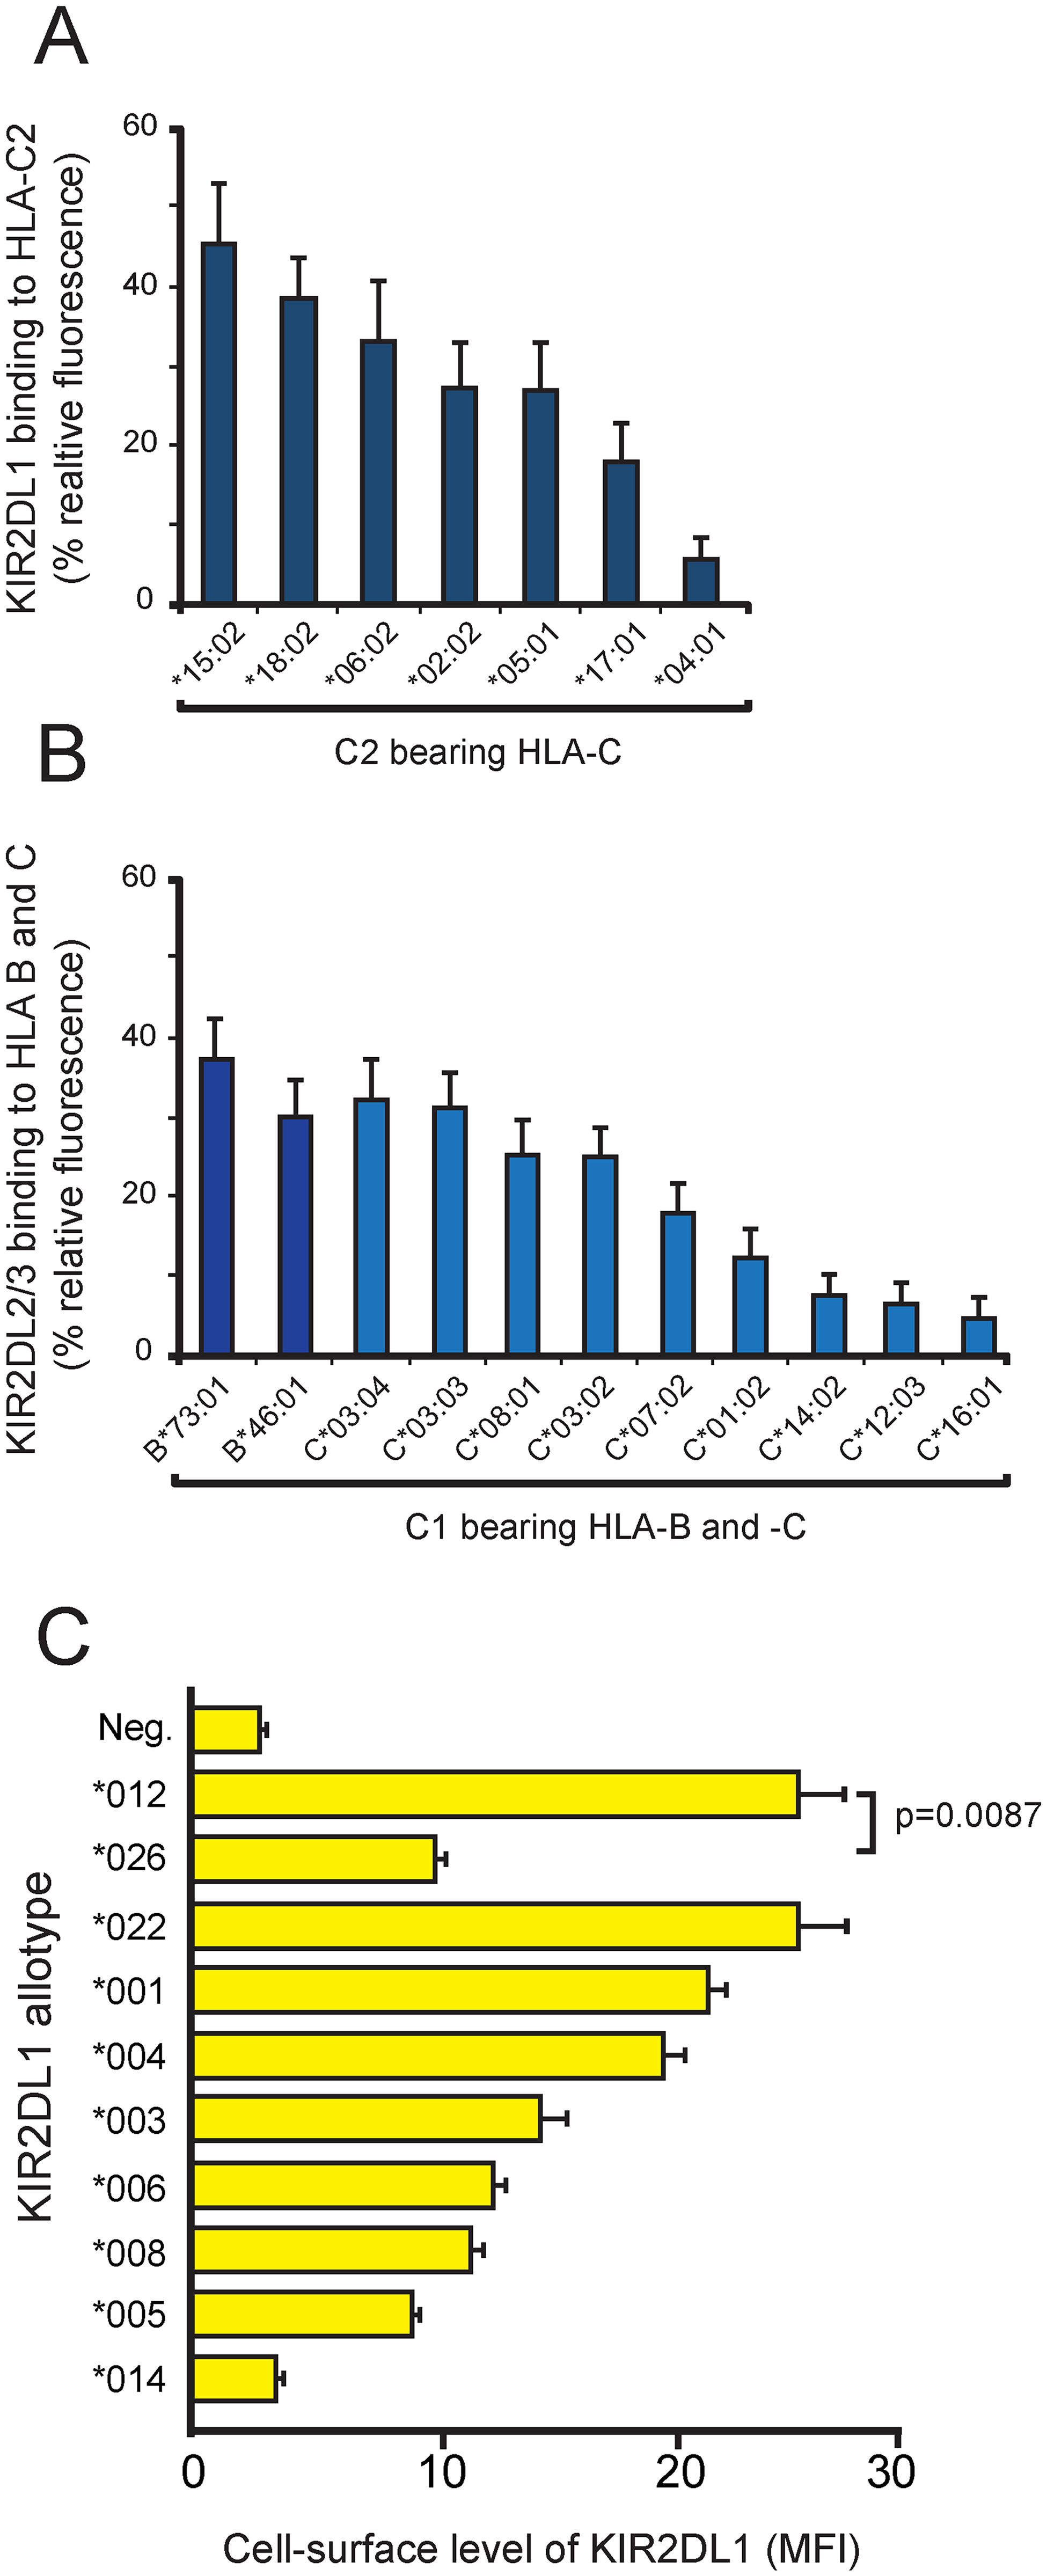 KIR polymorphism modulates the avidity and specificity for HLA-C, as well as KIR abundance at the cell surface.